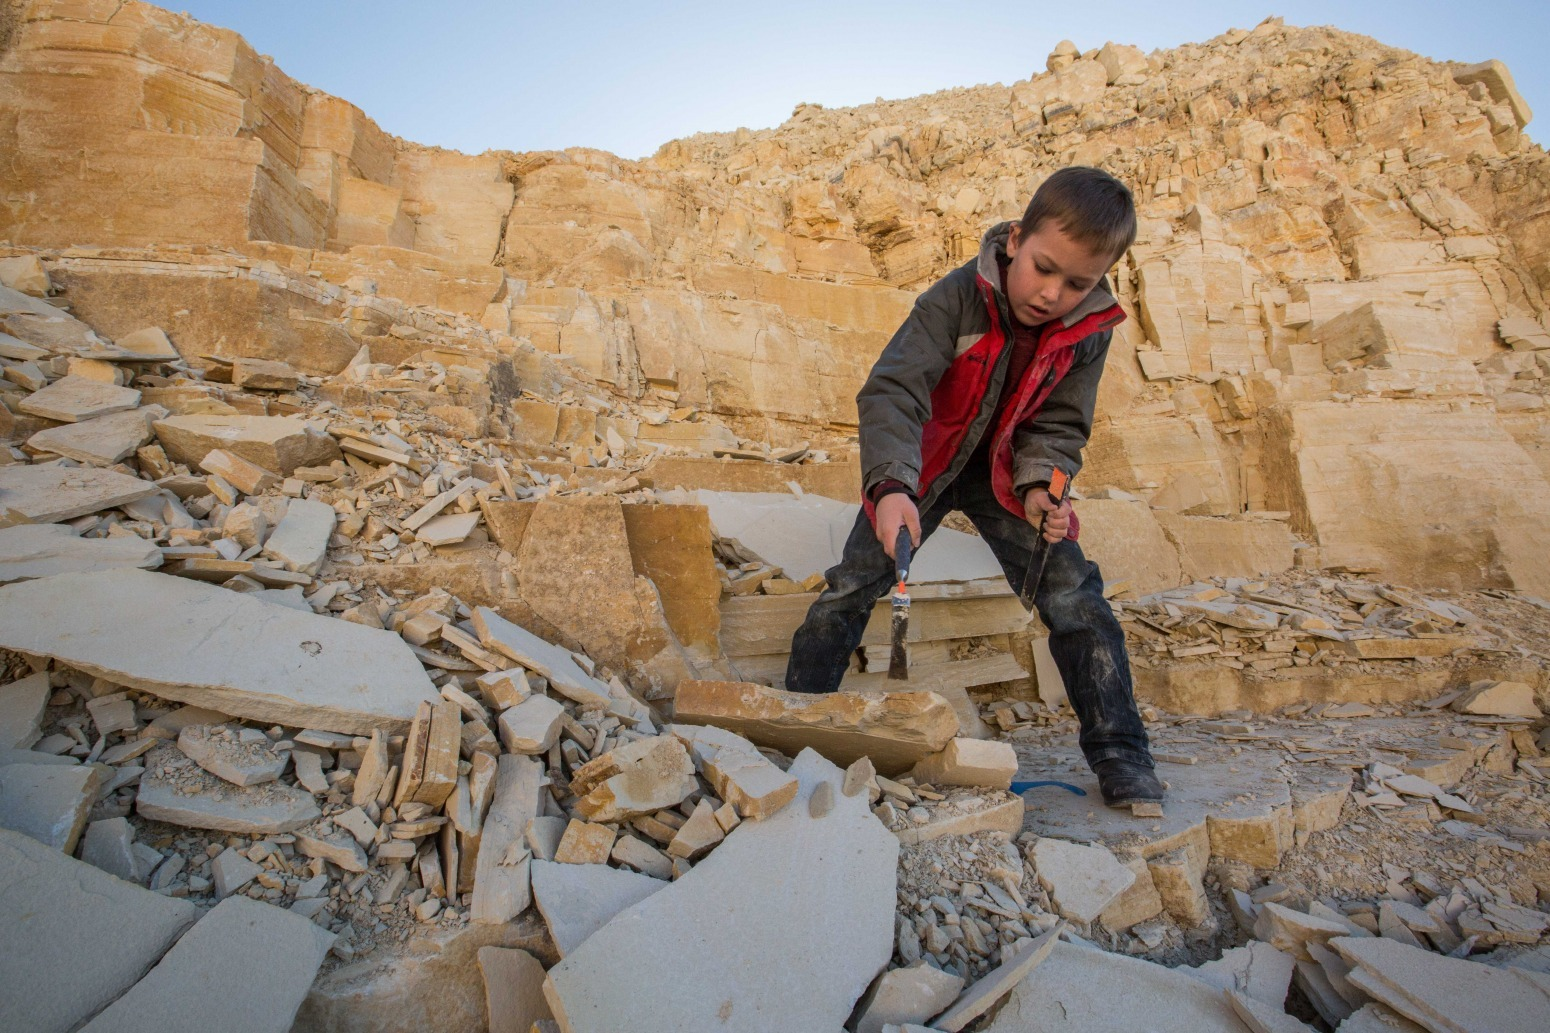 Western Wyoming itinerary —A boy chips away at a rock with a hammer at an archeological dig.